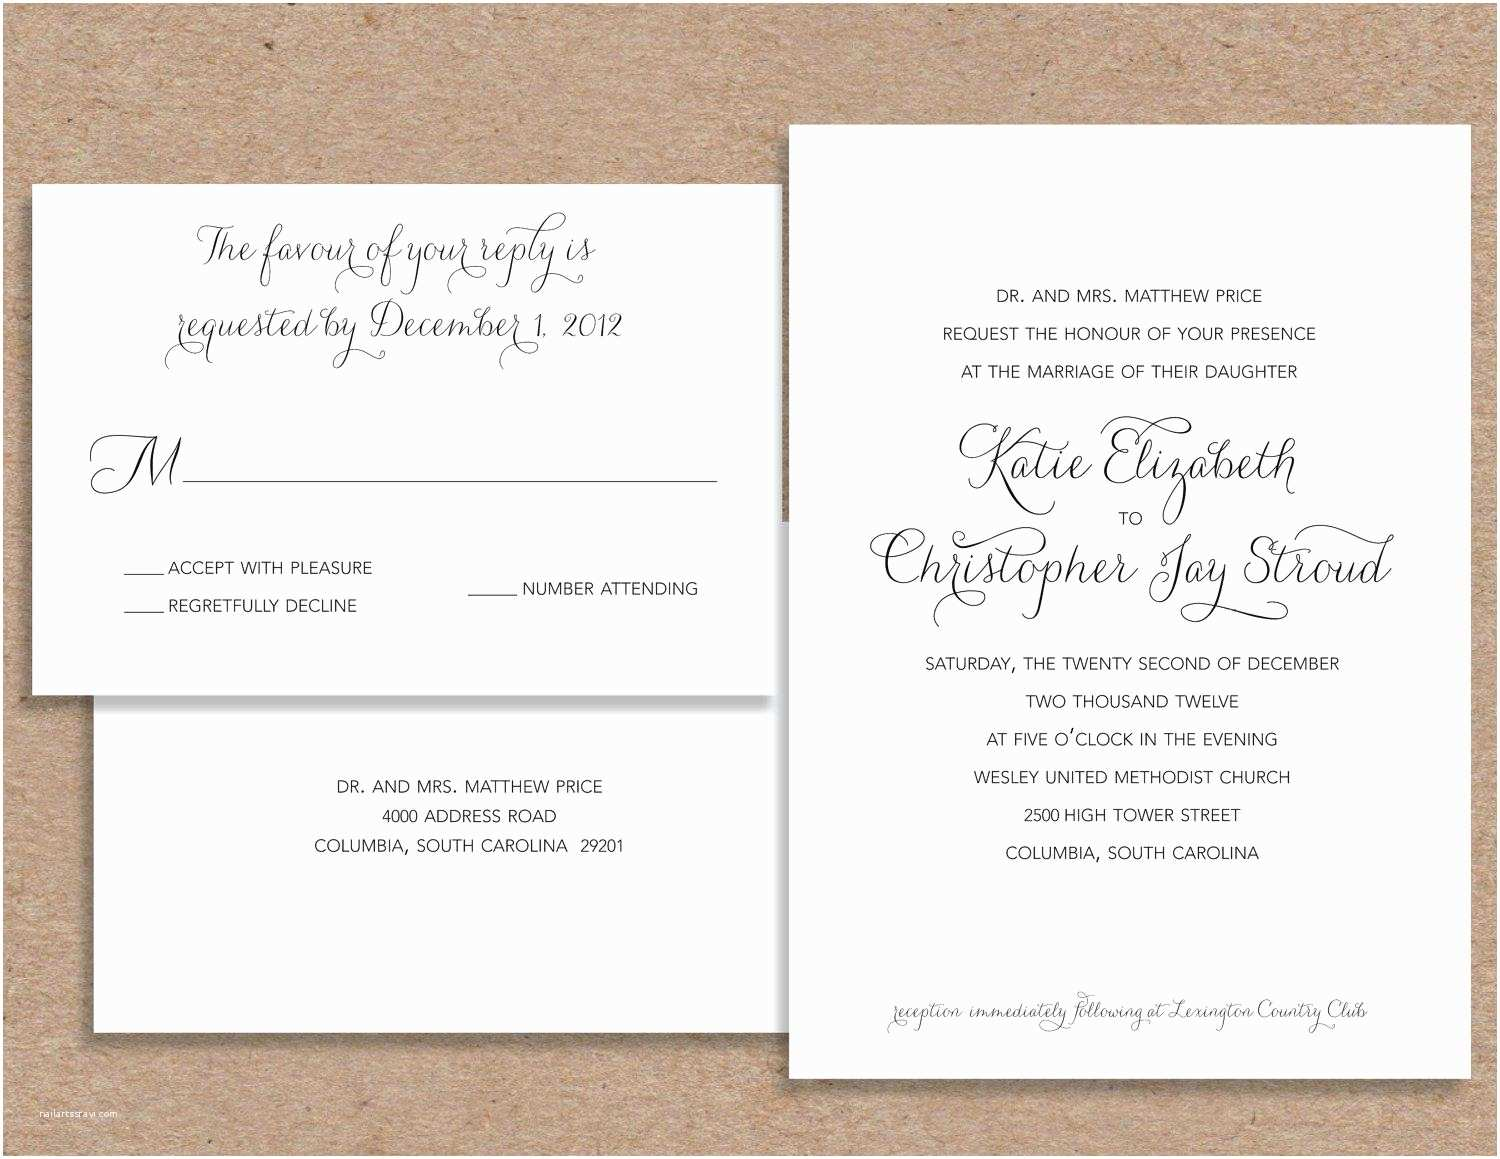 wedding invitation wordings for friends from bride and groom